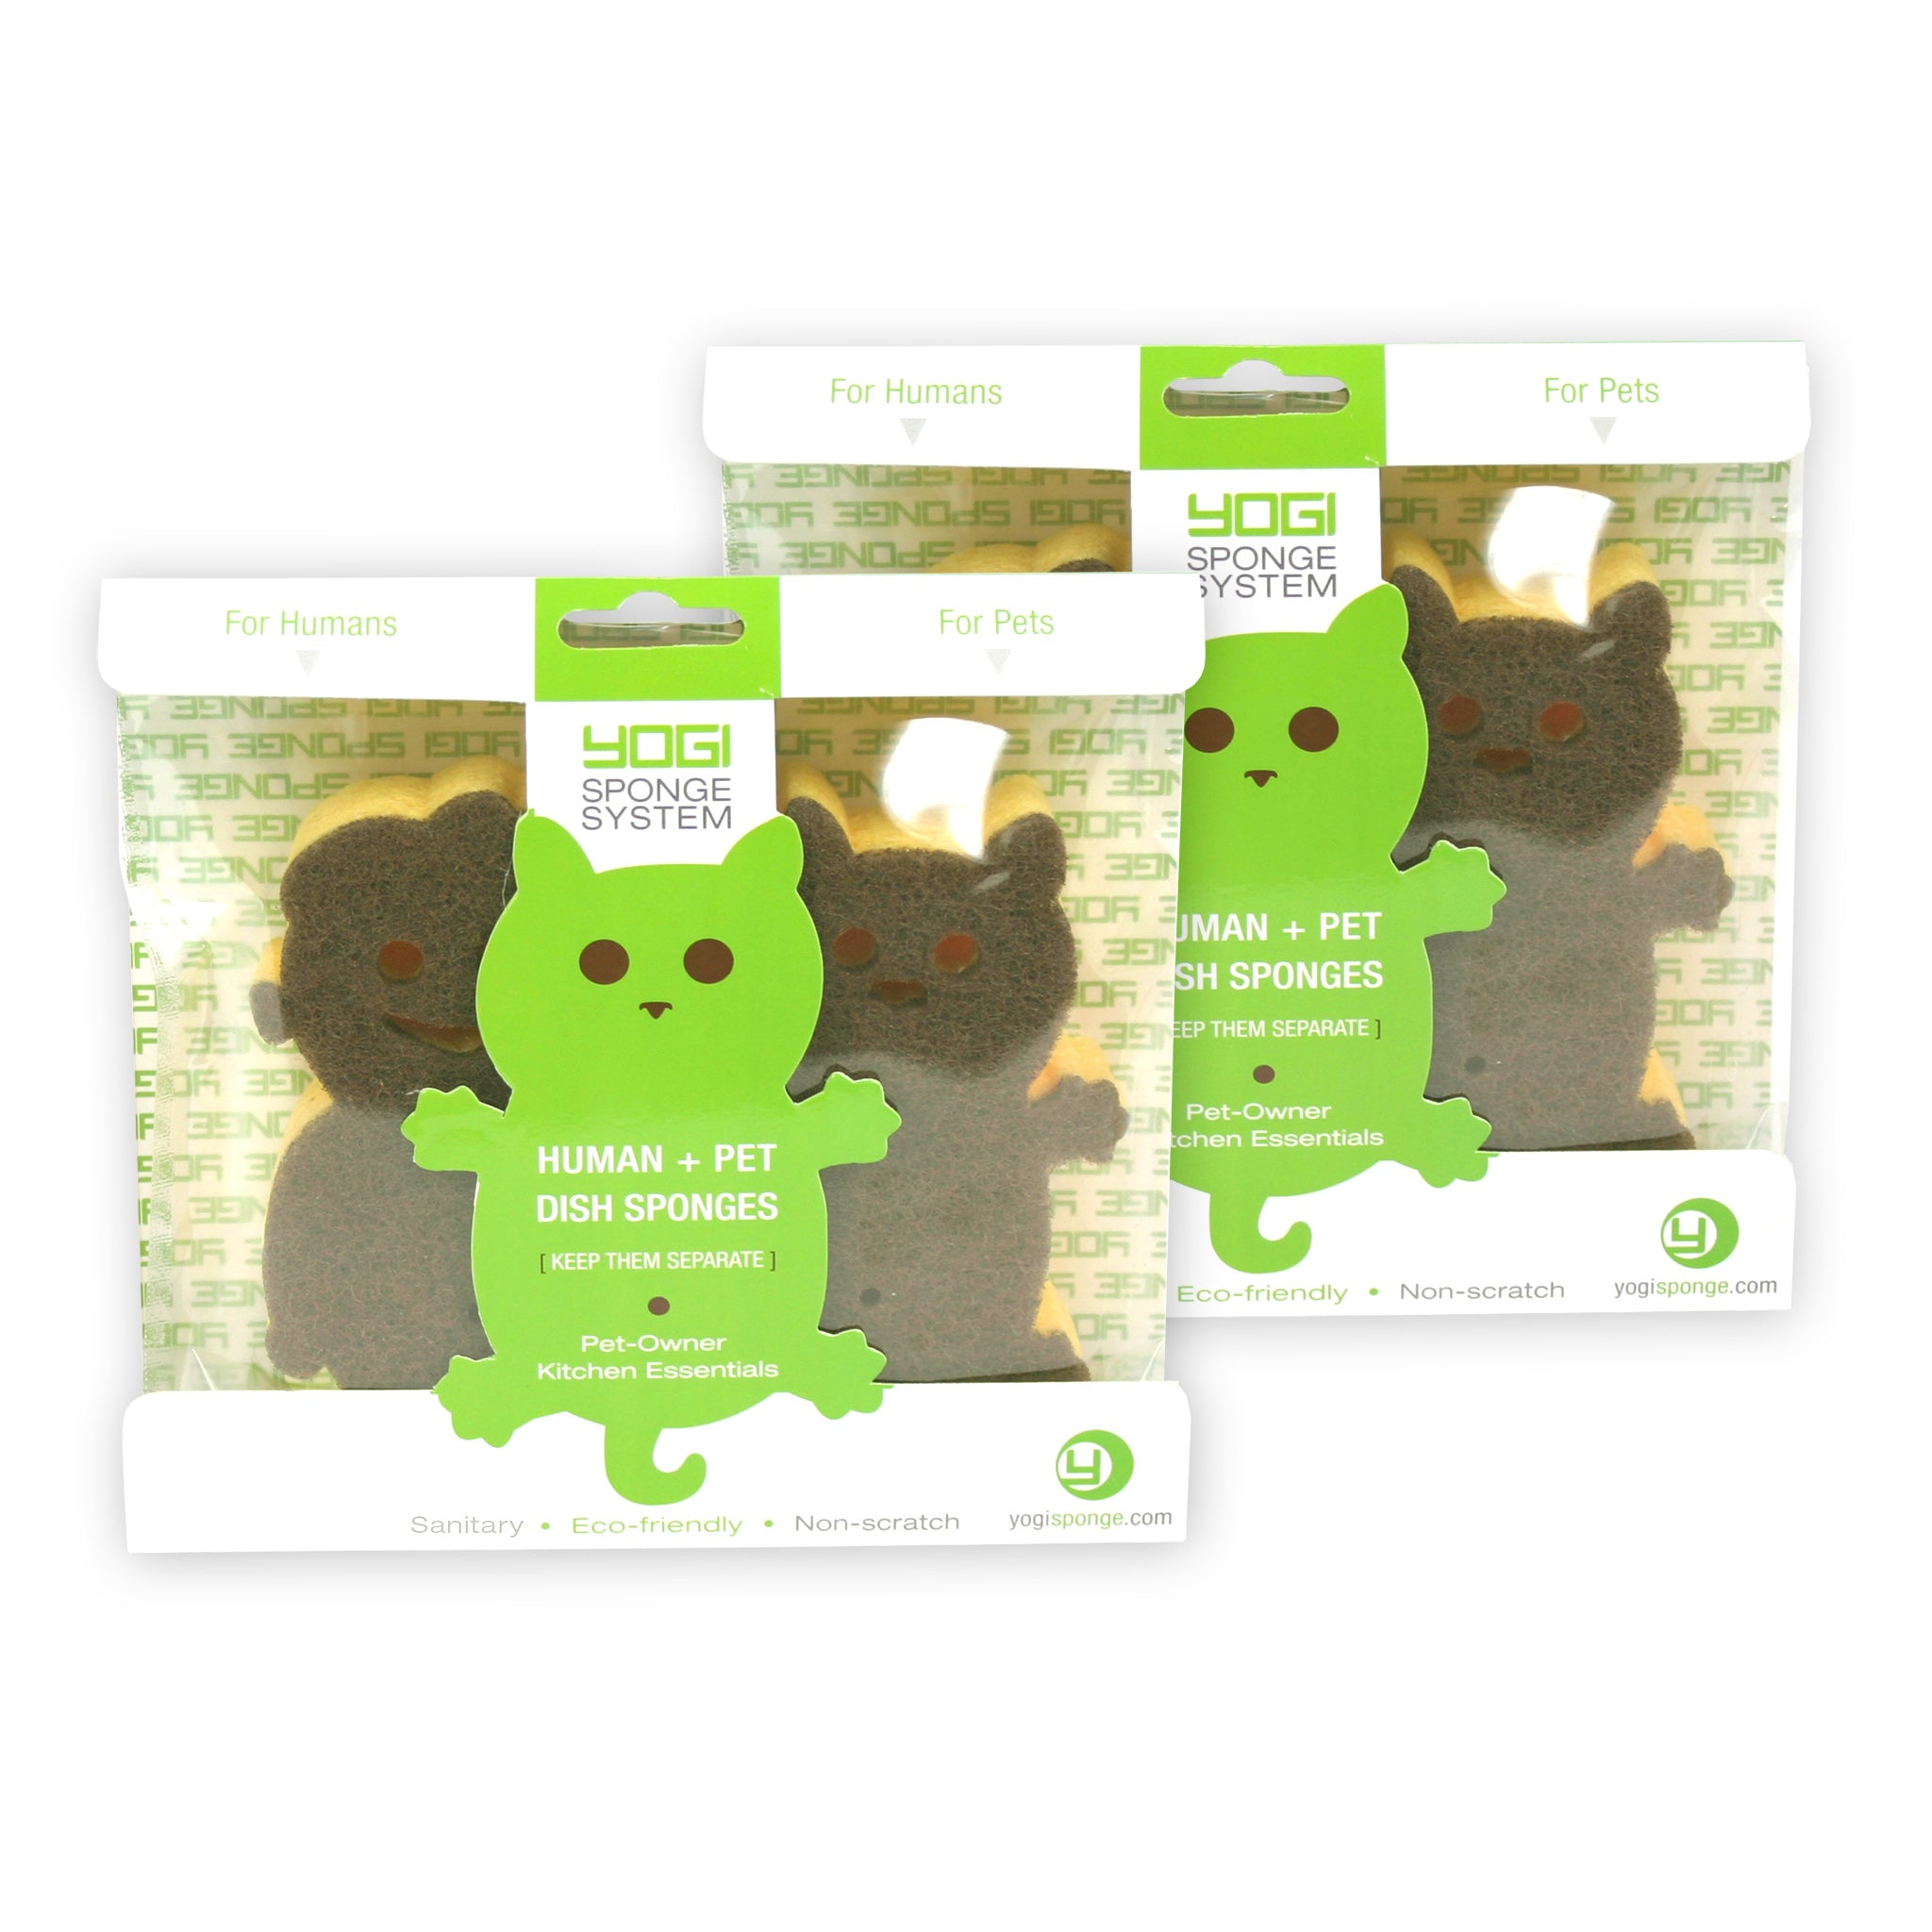 2 Packs of Yogi Sponge Human/Cat